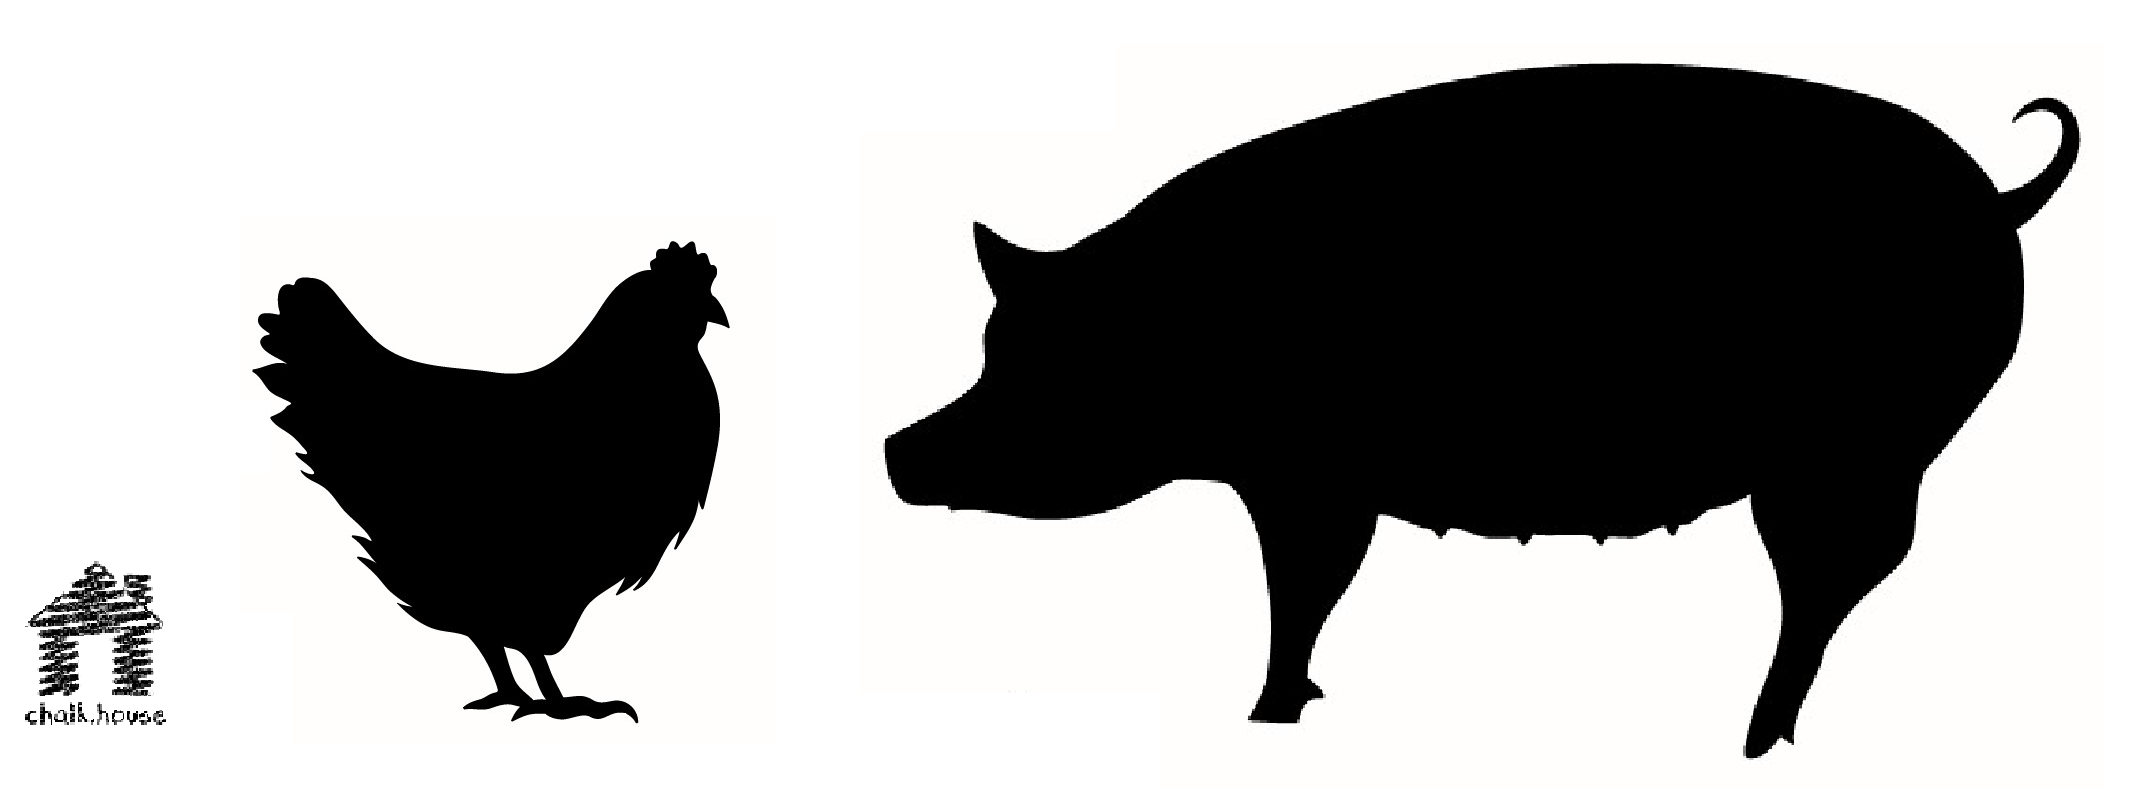 Free Farm Animals Art, Download Free Clip Art, Free Clip Art on Clipart  Library